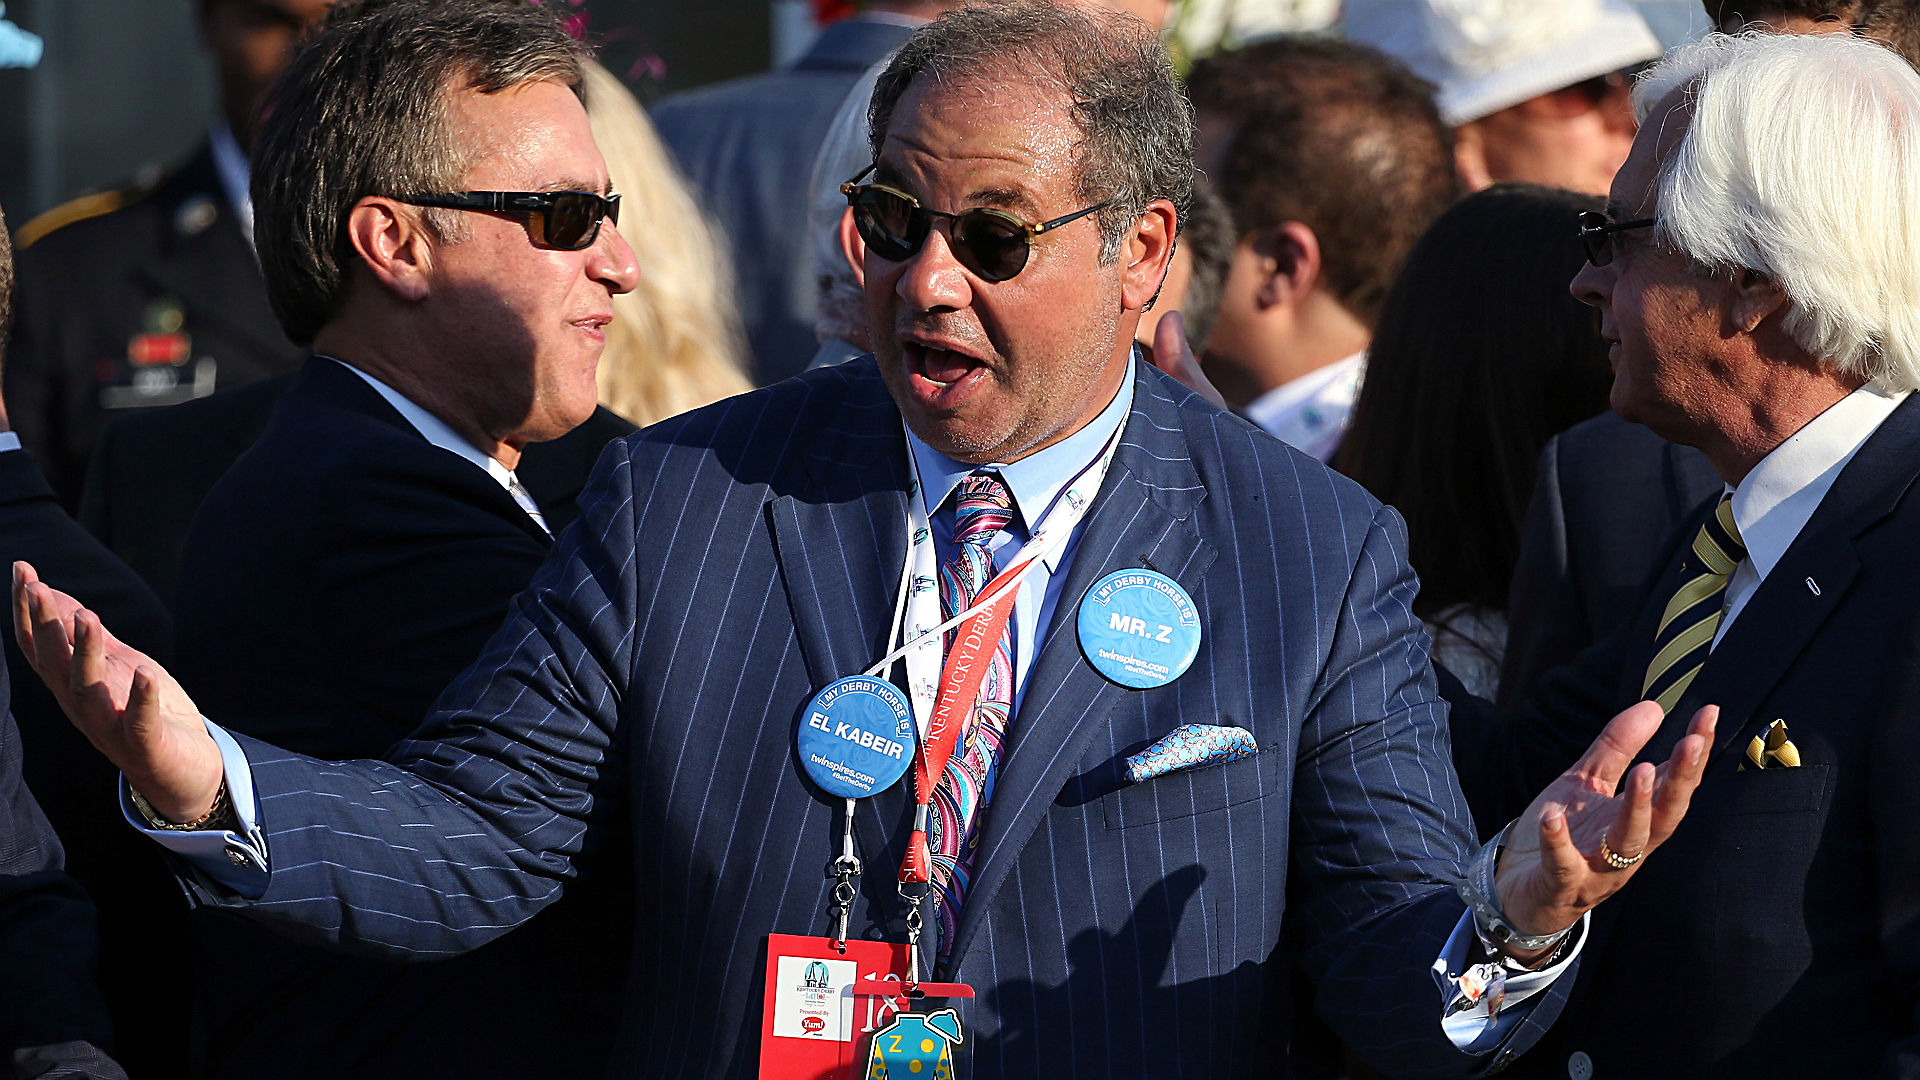 American Pharoah owner calls gambling debt lawsuit 'blackmail'